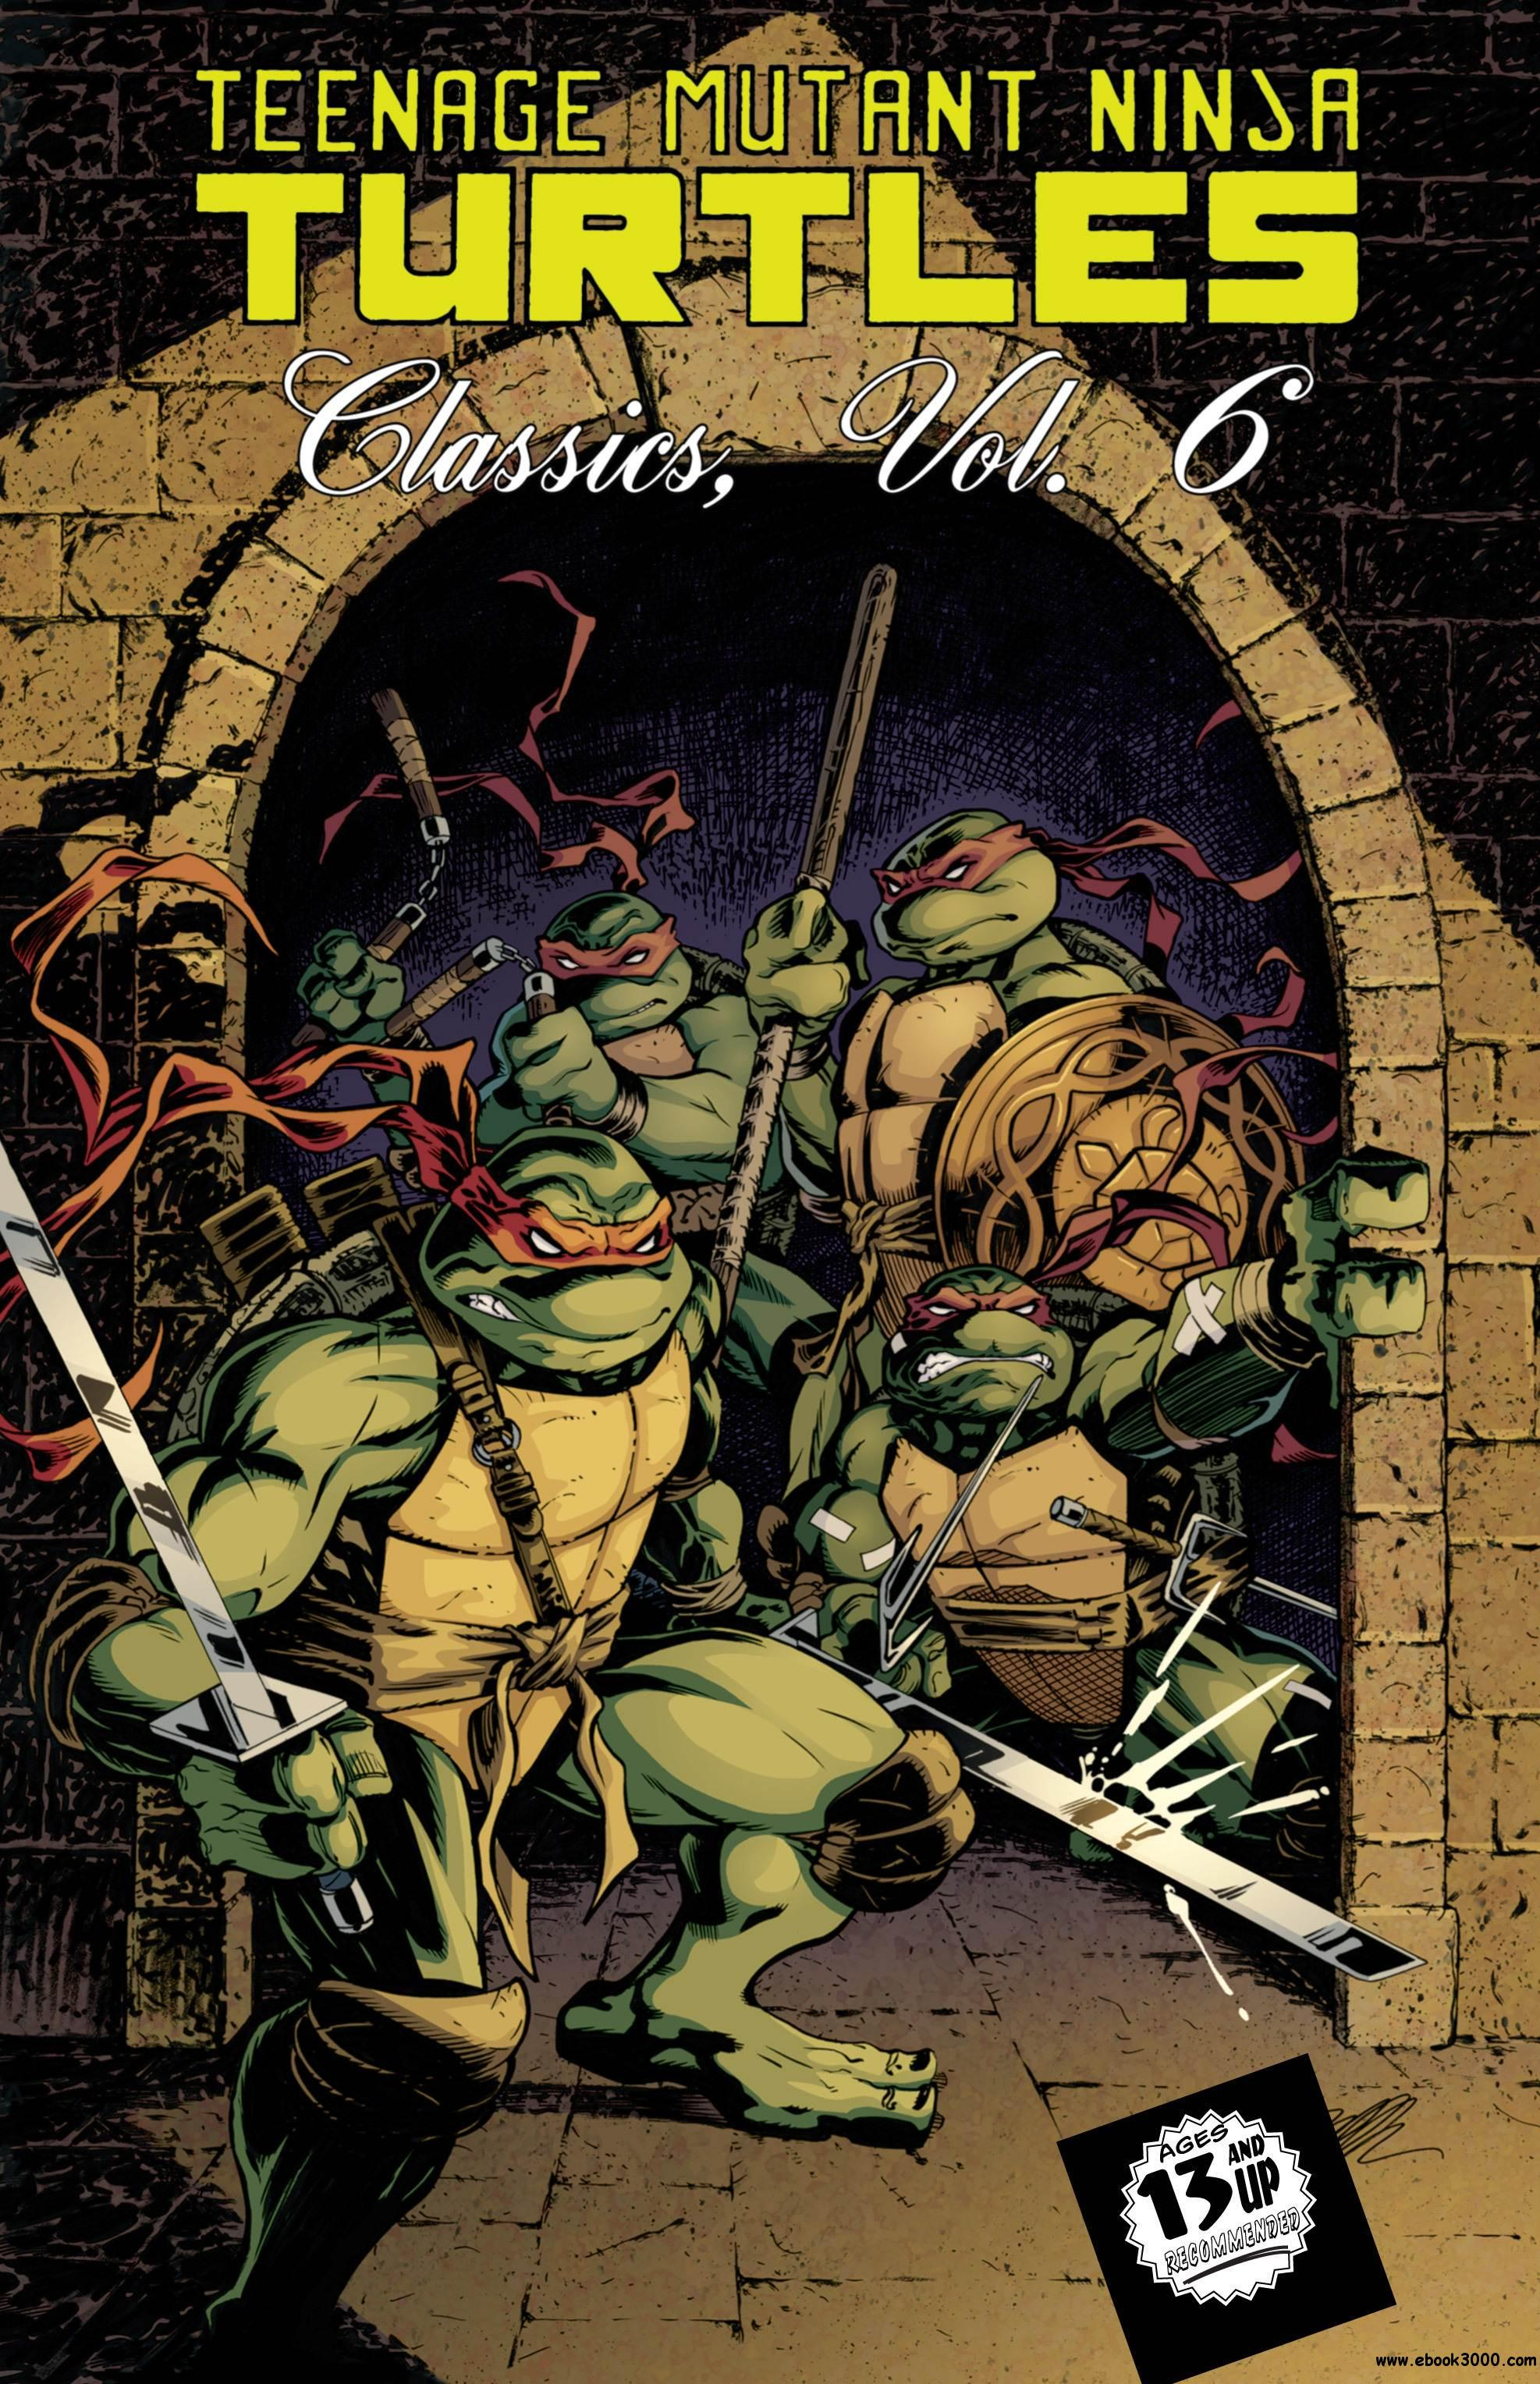 Teenage Mutant Ninja Turtles - Classics vol 06 (2013) free download